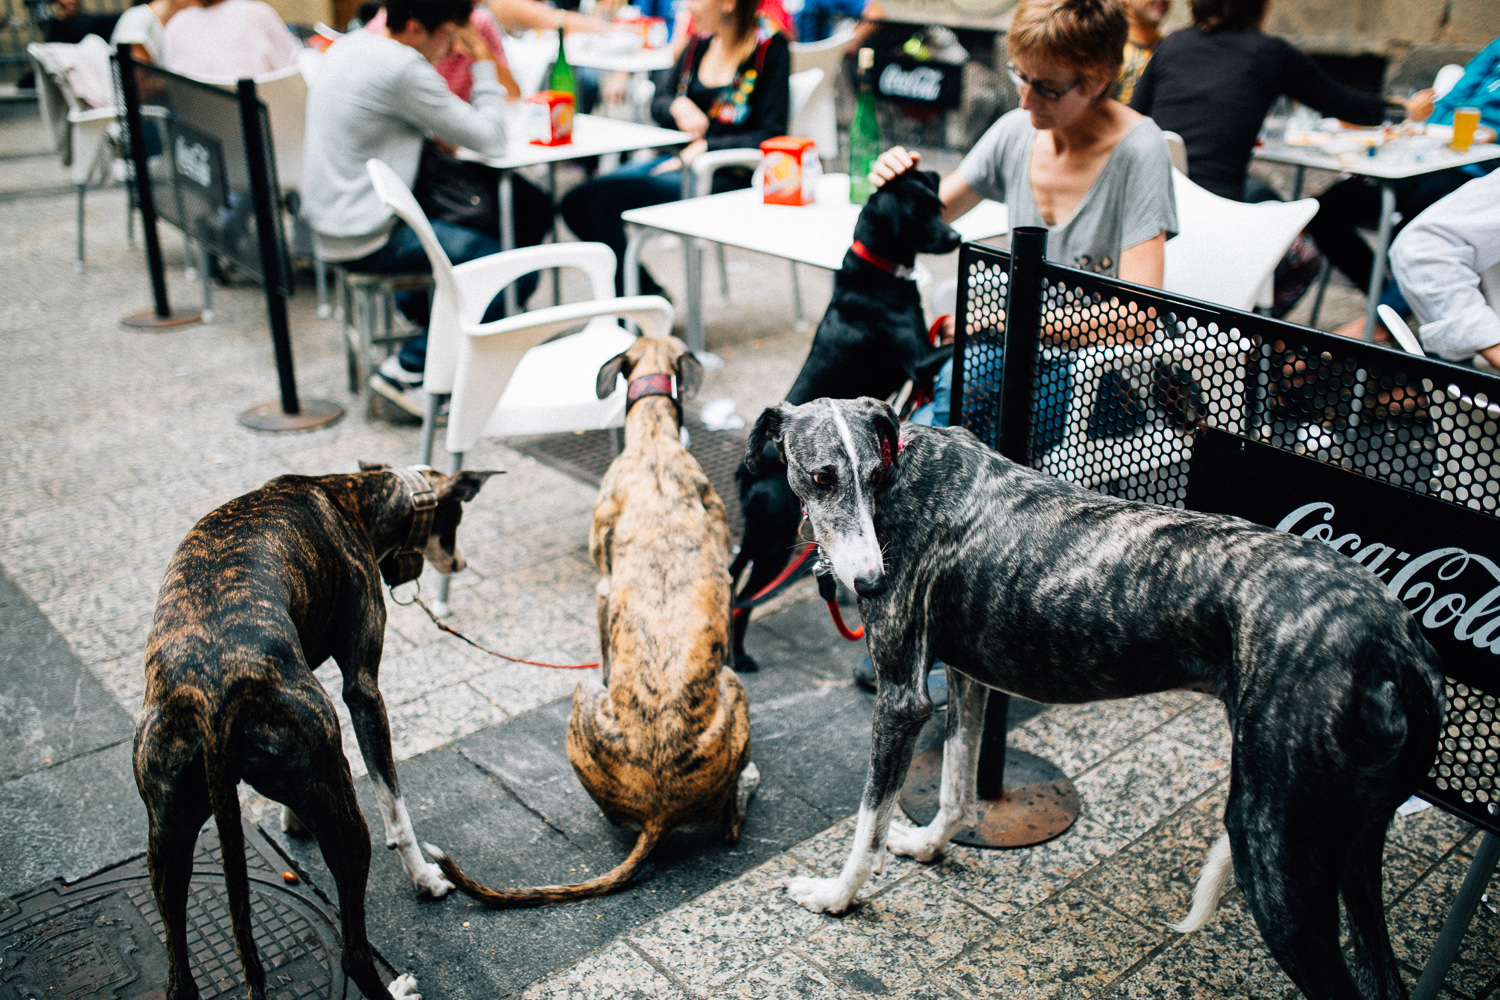 Almost everybody has a Galgo in Donostia